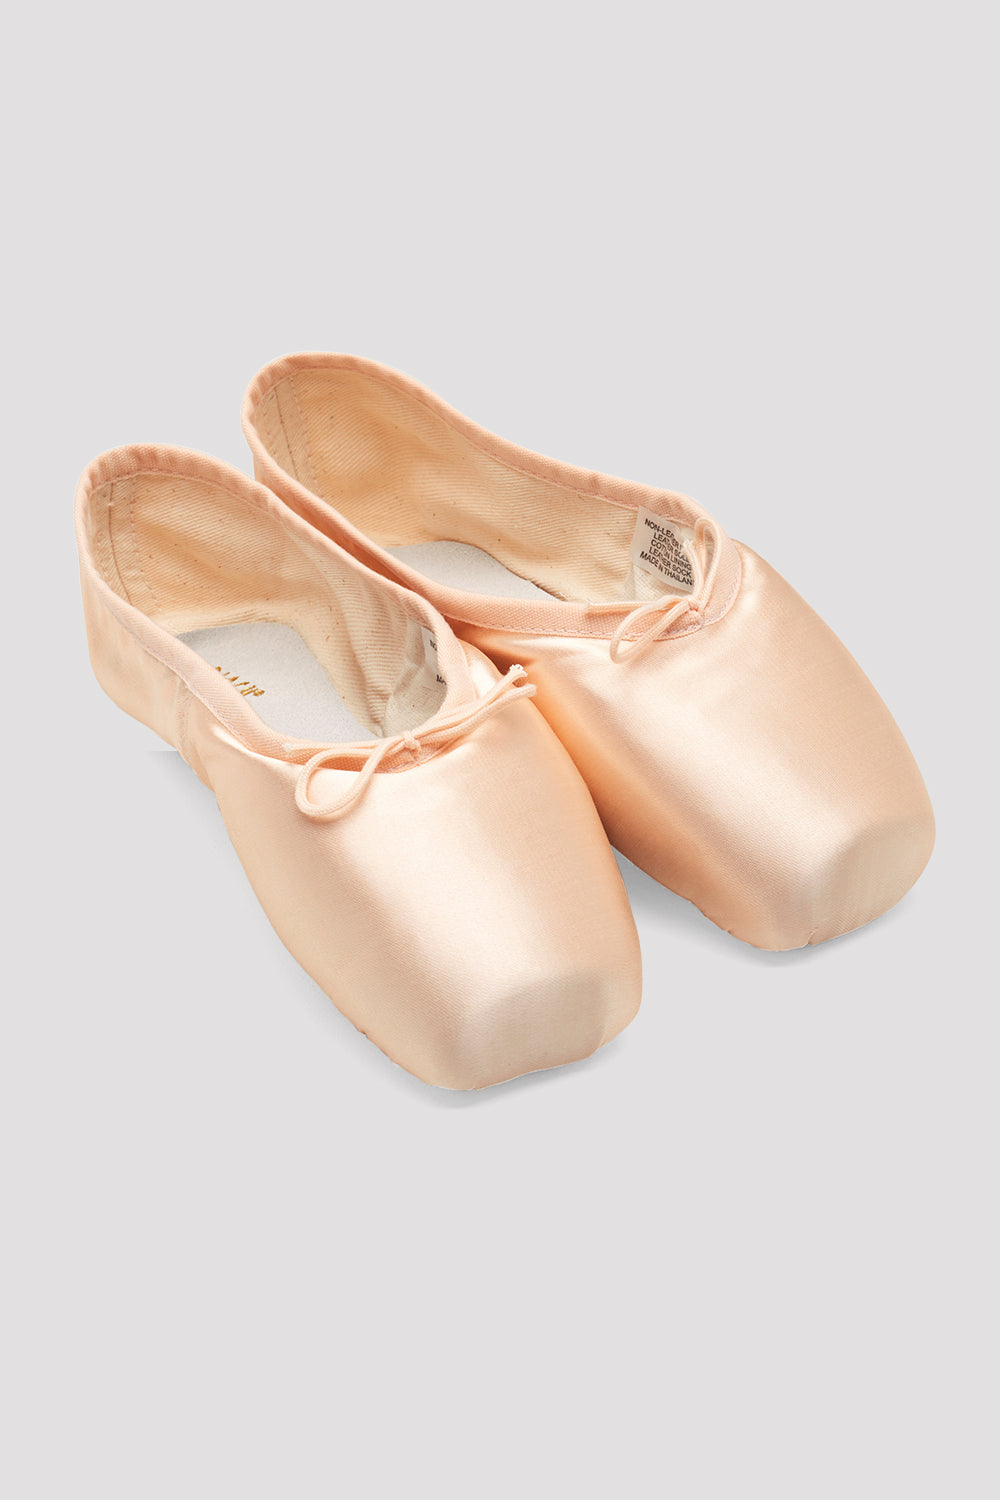 Hannah Long Length Pointe Shoes - BLOCH US